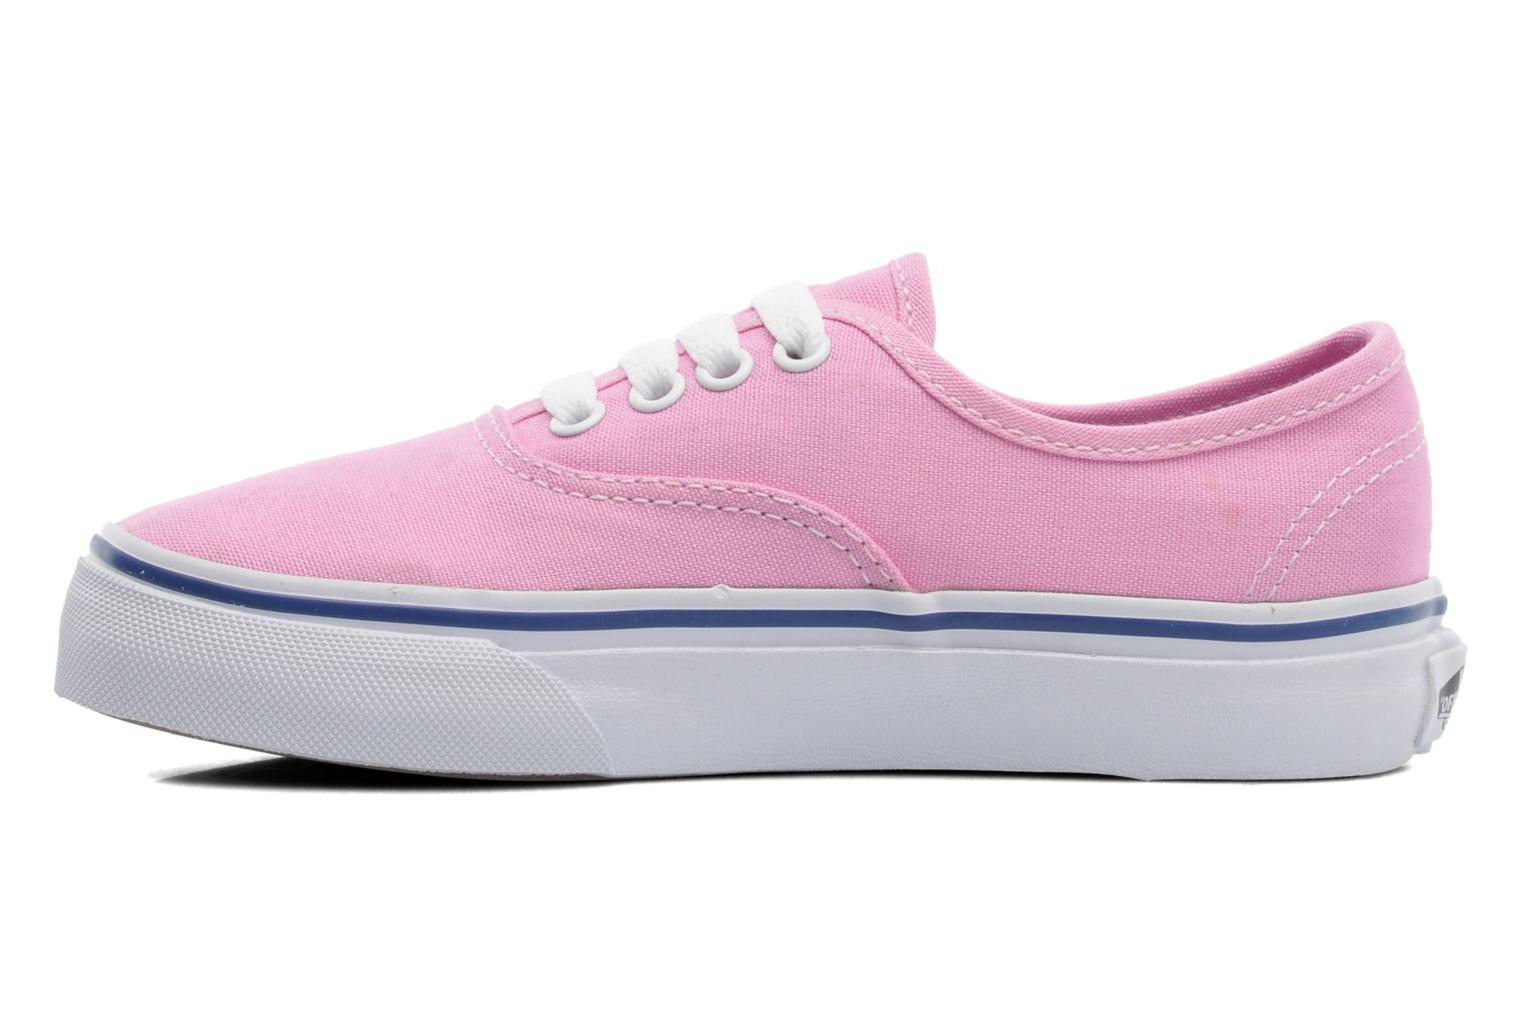 Authentic BB Prism pinkTrue white